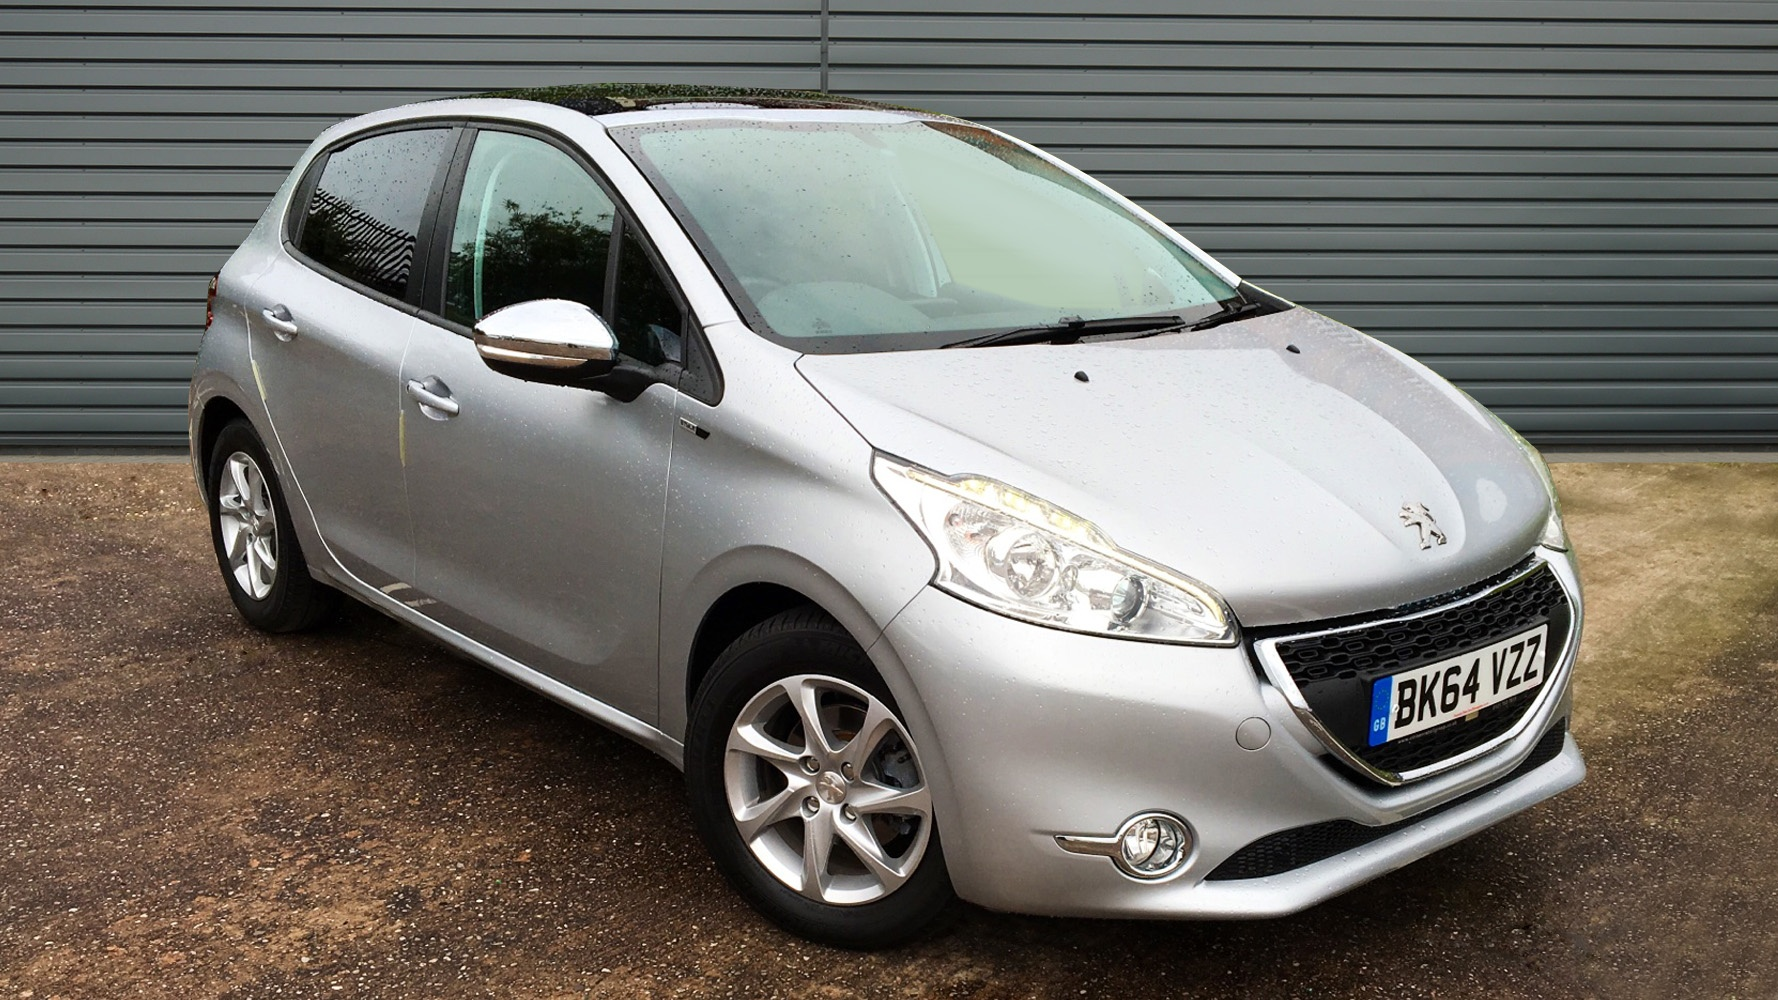 used peugeot 208 hatchback 1 2 vti style 5dr 2014 bk64vzz. Black Bedroom Furniture Sets. Home Design Ideas